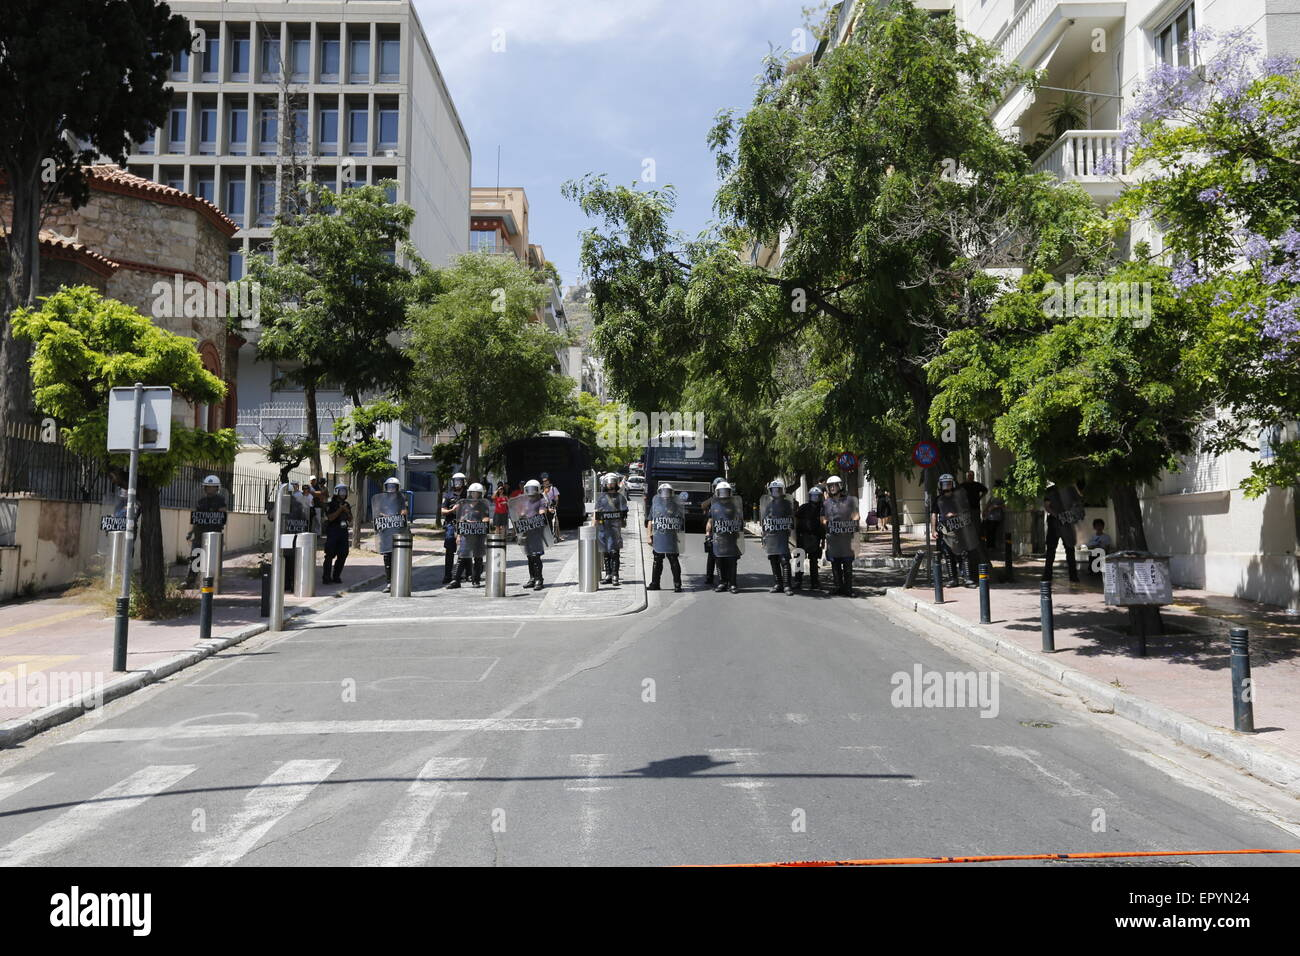 Athens, Greece. 23rd May 2015. Riot police officers protect the British Embassy. A protest march by Greek anarchists - Stock Image